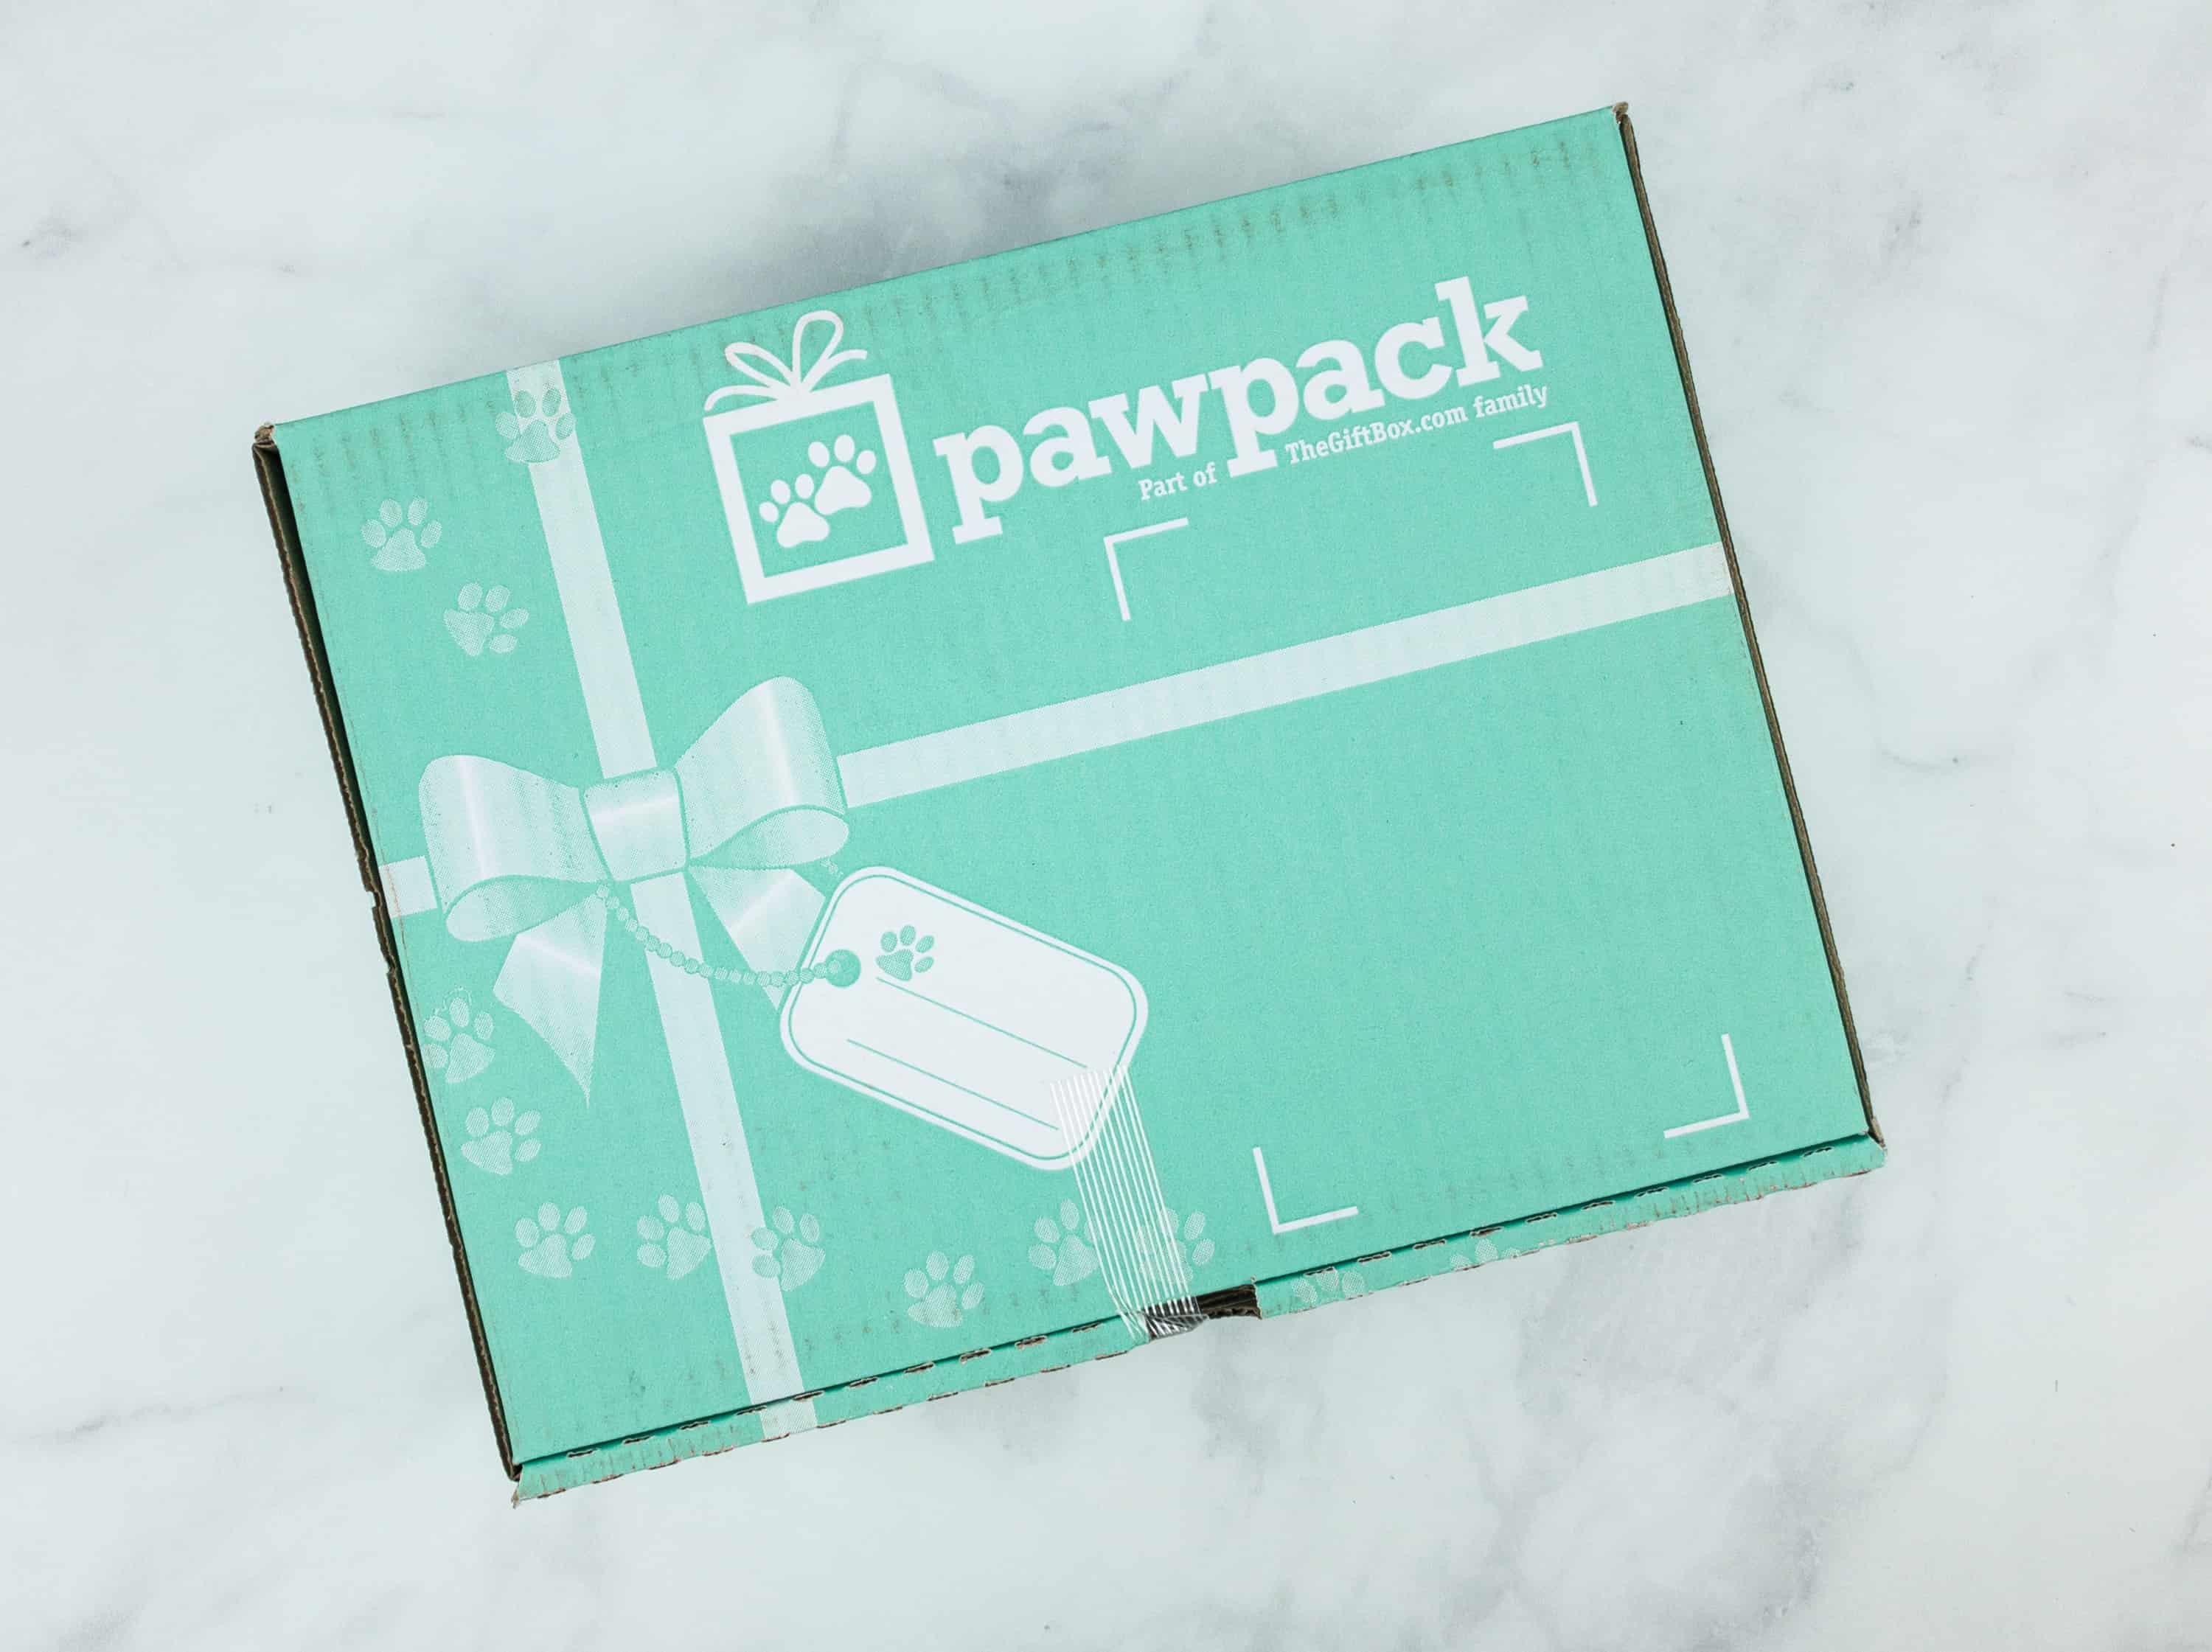 c3349d1be01d PawPack Dog Subscription Box Review + Coupon - September 2018 ...